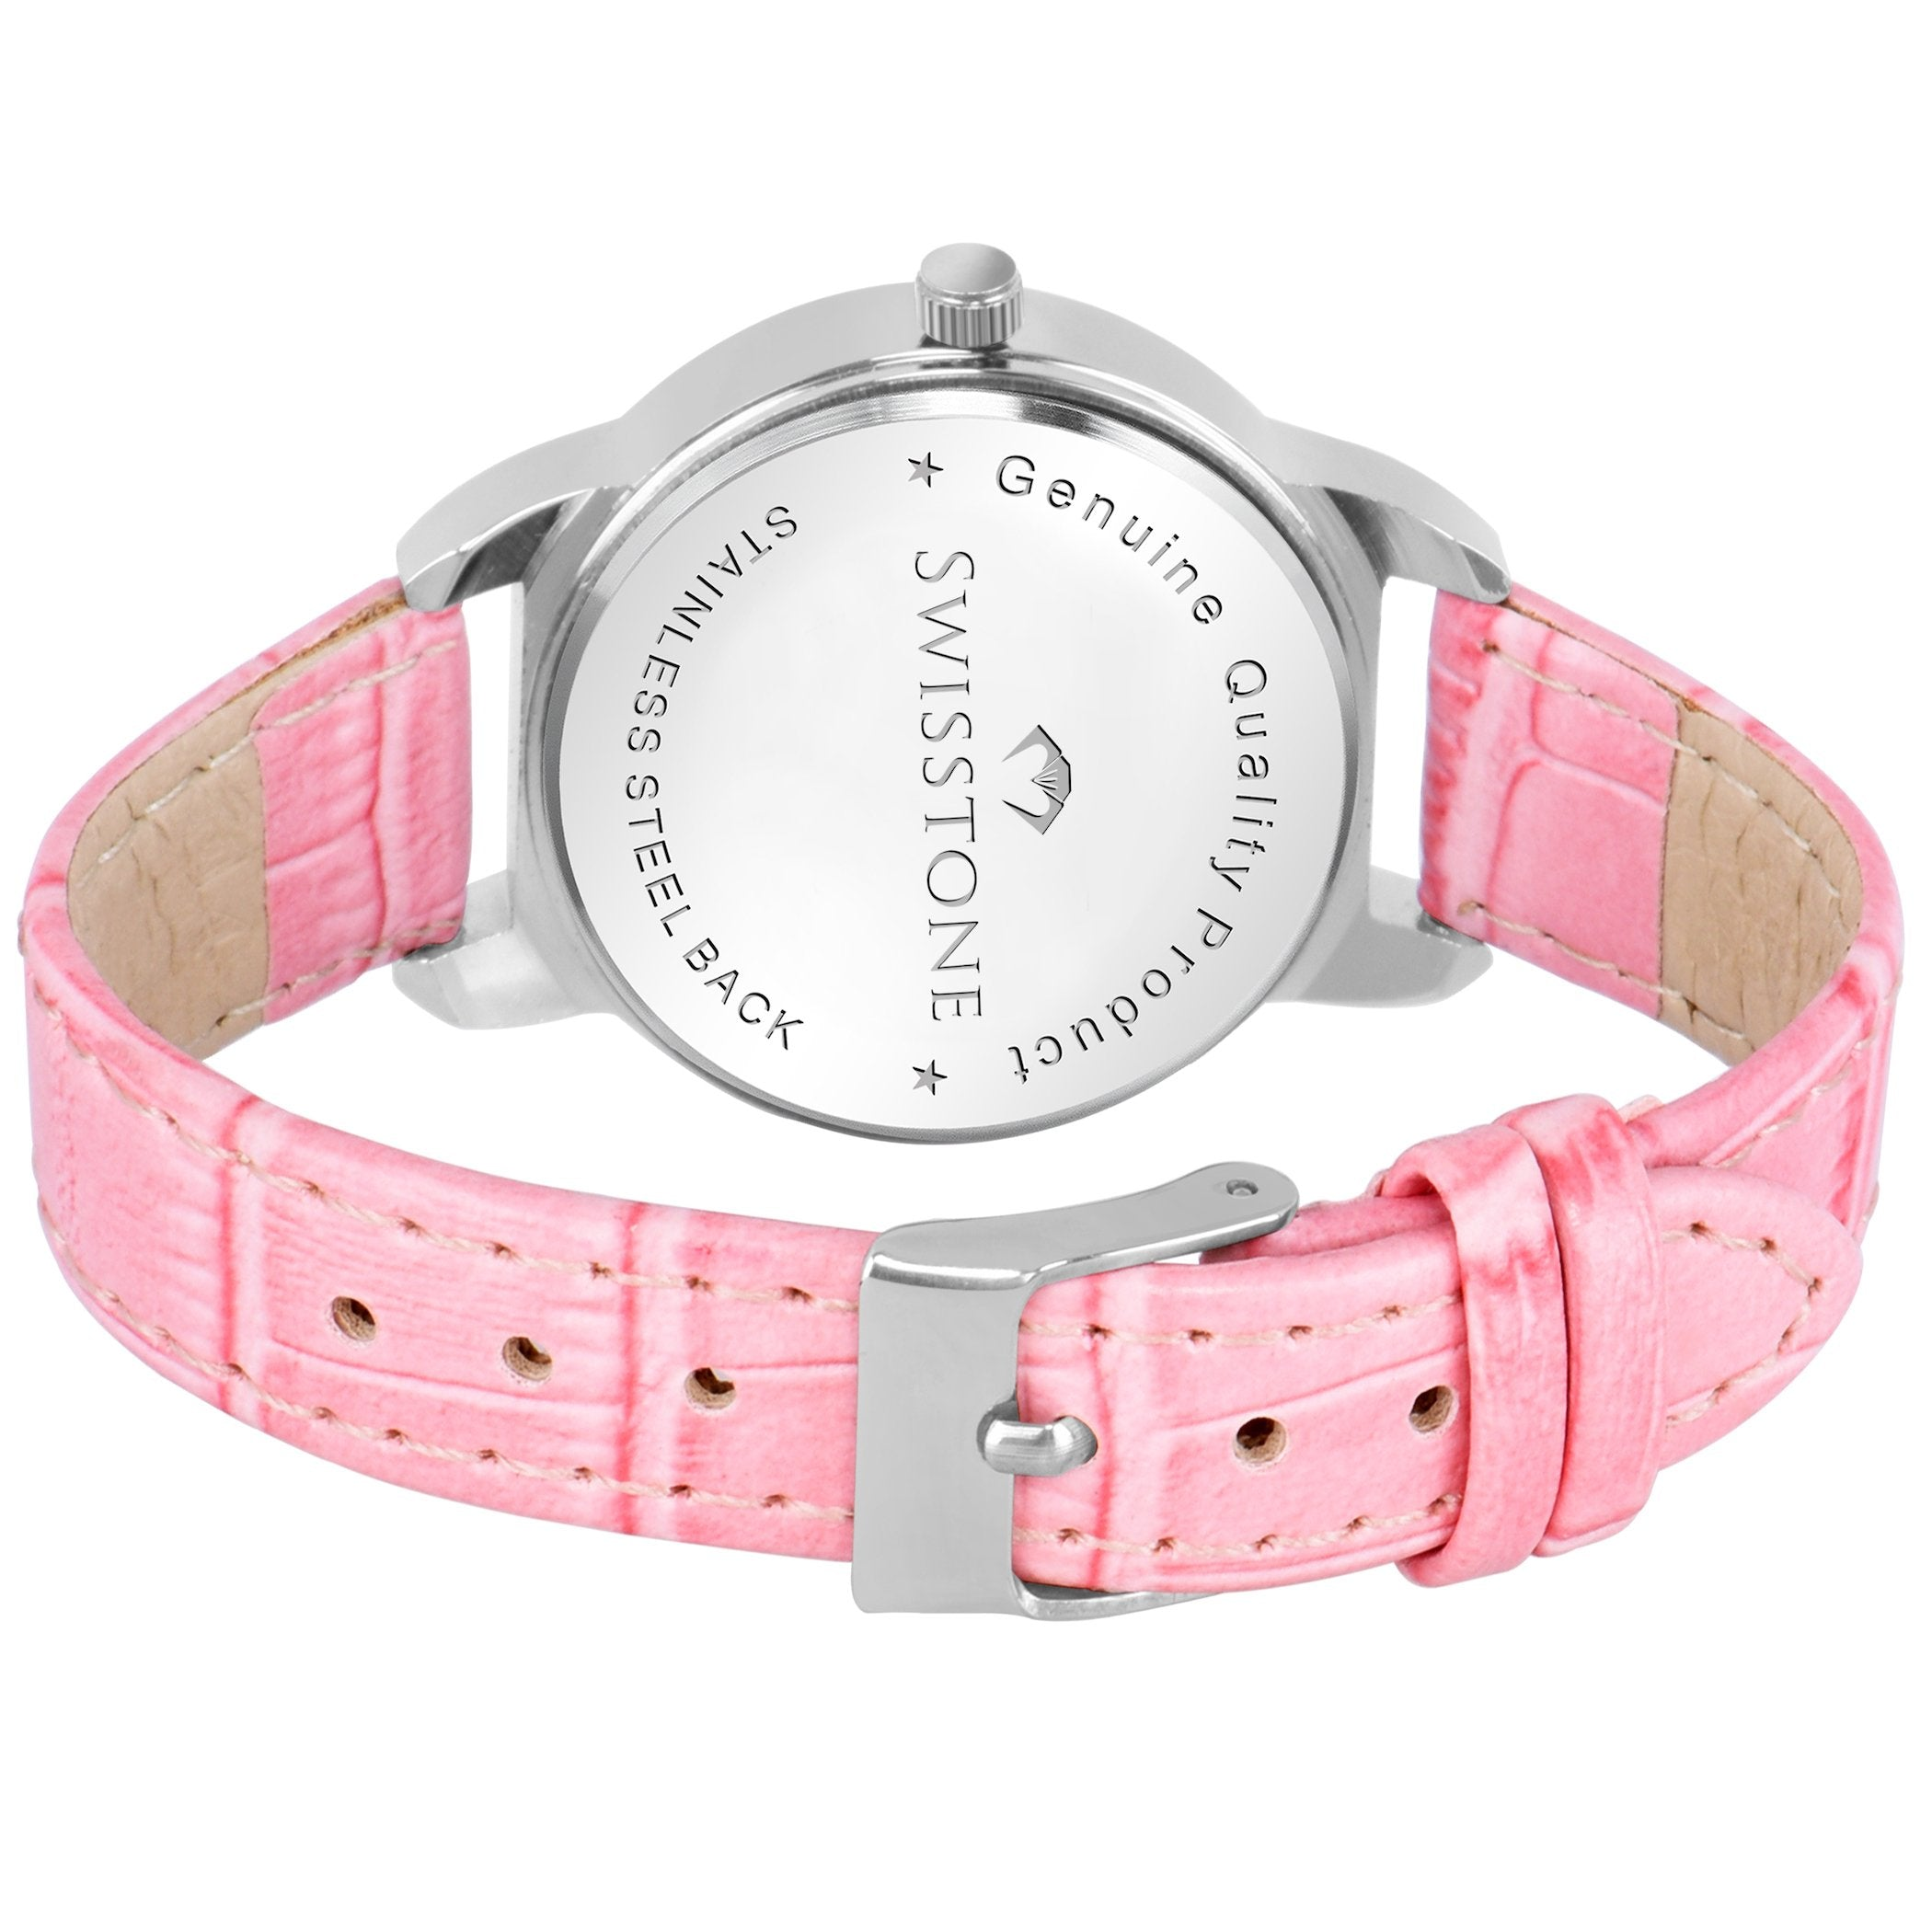 Swisstone SW-L143-PINK Wrist Watch for Women